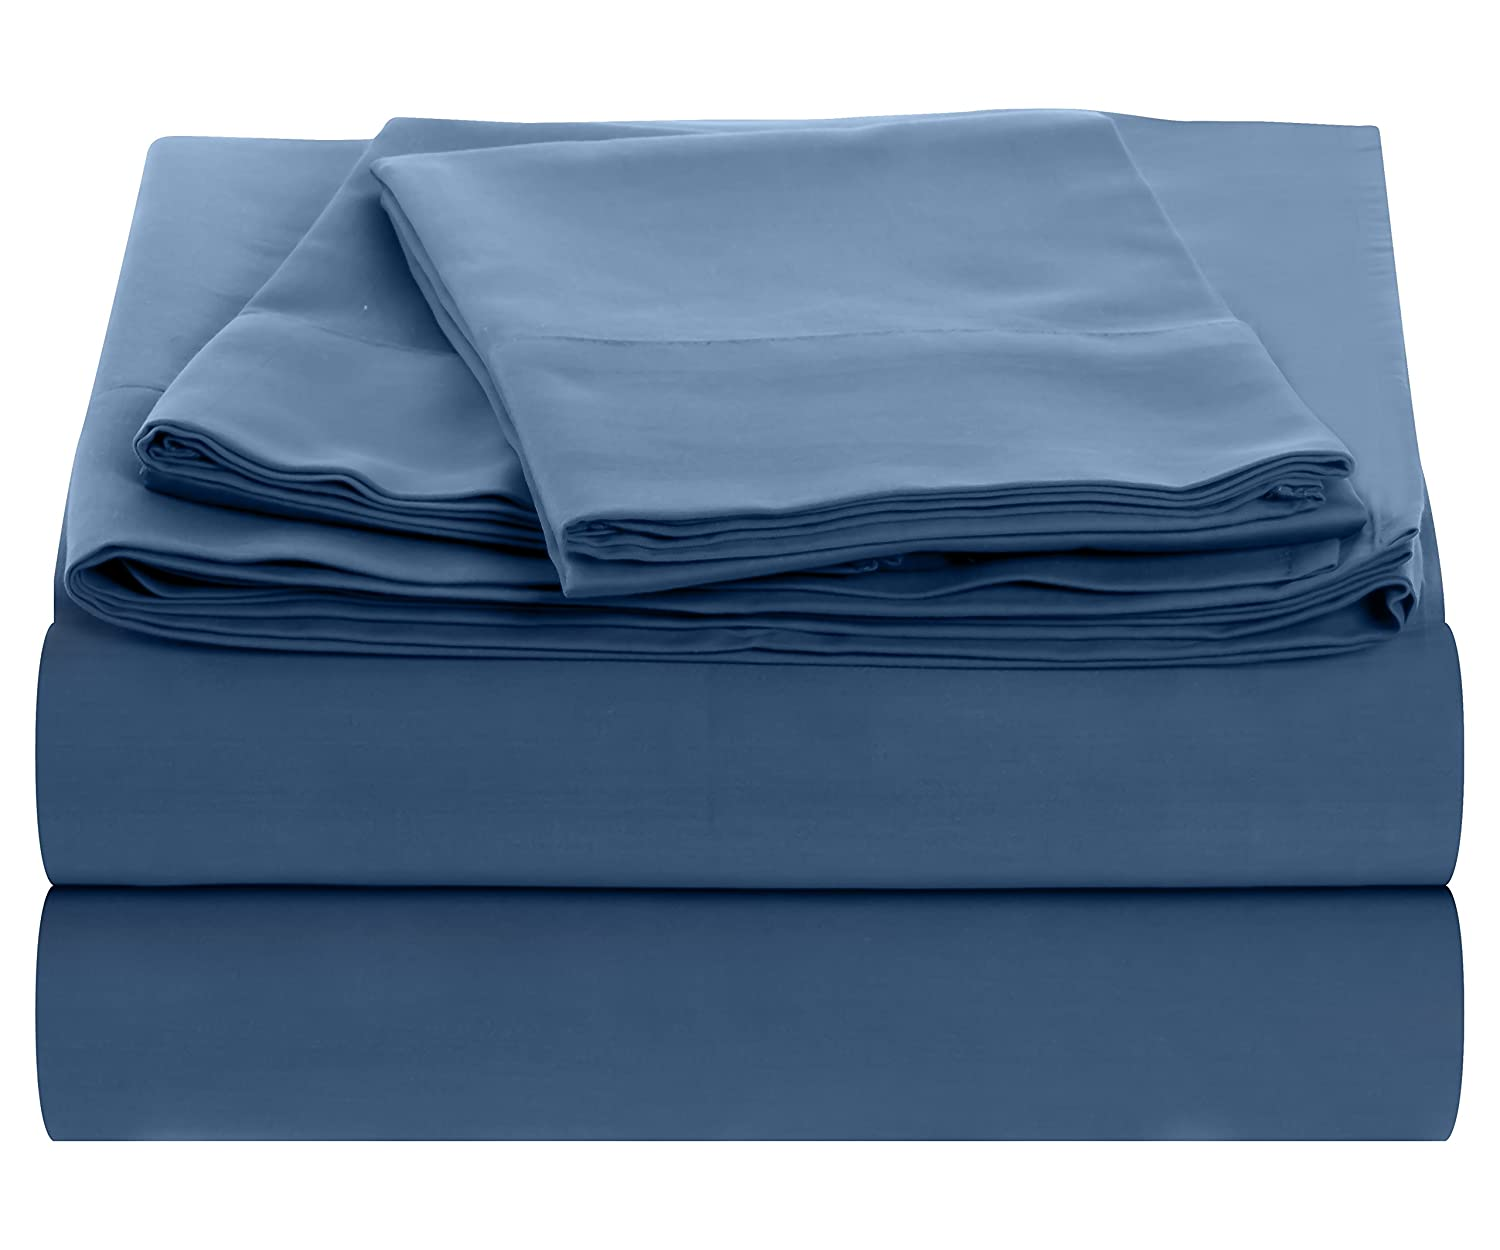 Outlast Temperature Regulating Hypoallergenic Sheet Set – 300 Thread Count, 40% Outlast, 60% Cotton Sateen Weave, Corn Silk Yellow, Cal King Design Weave SA-300SCK-CRS